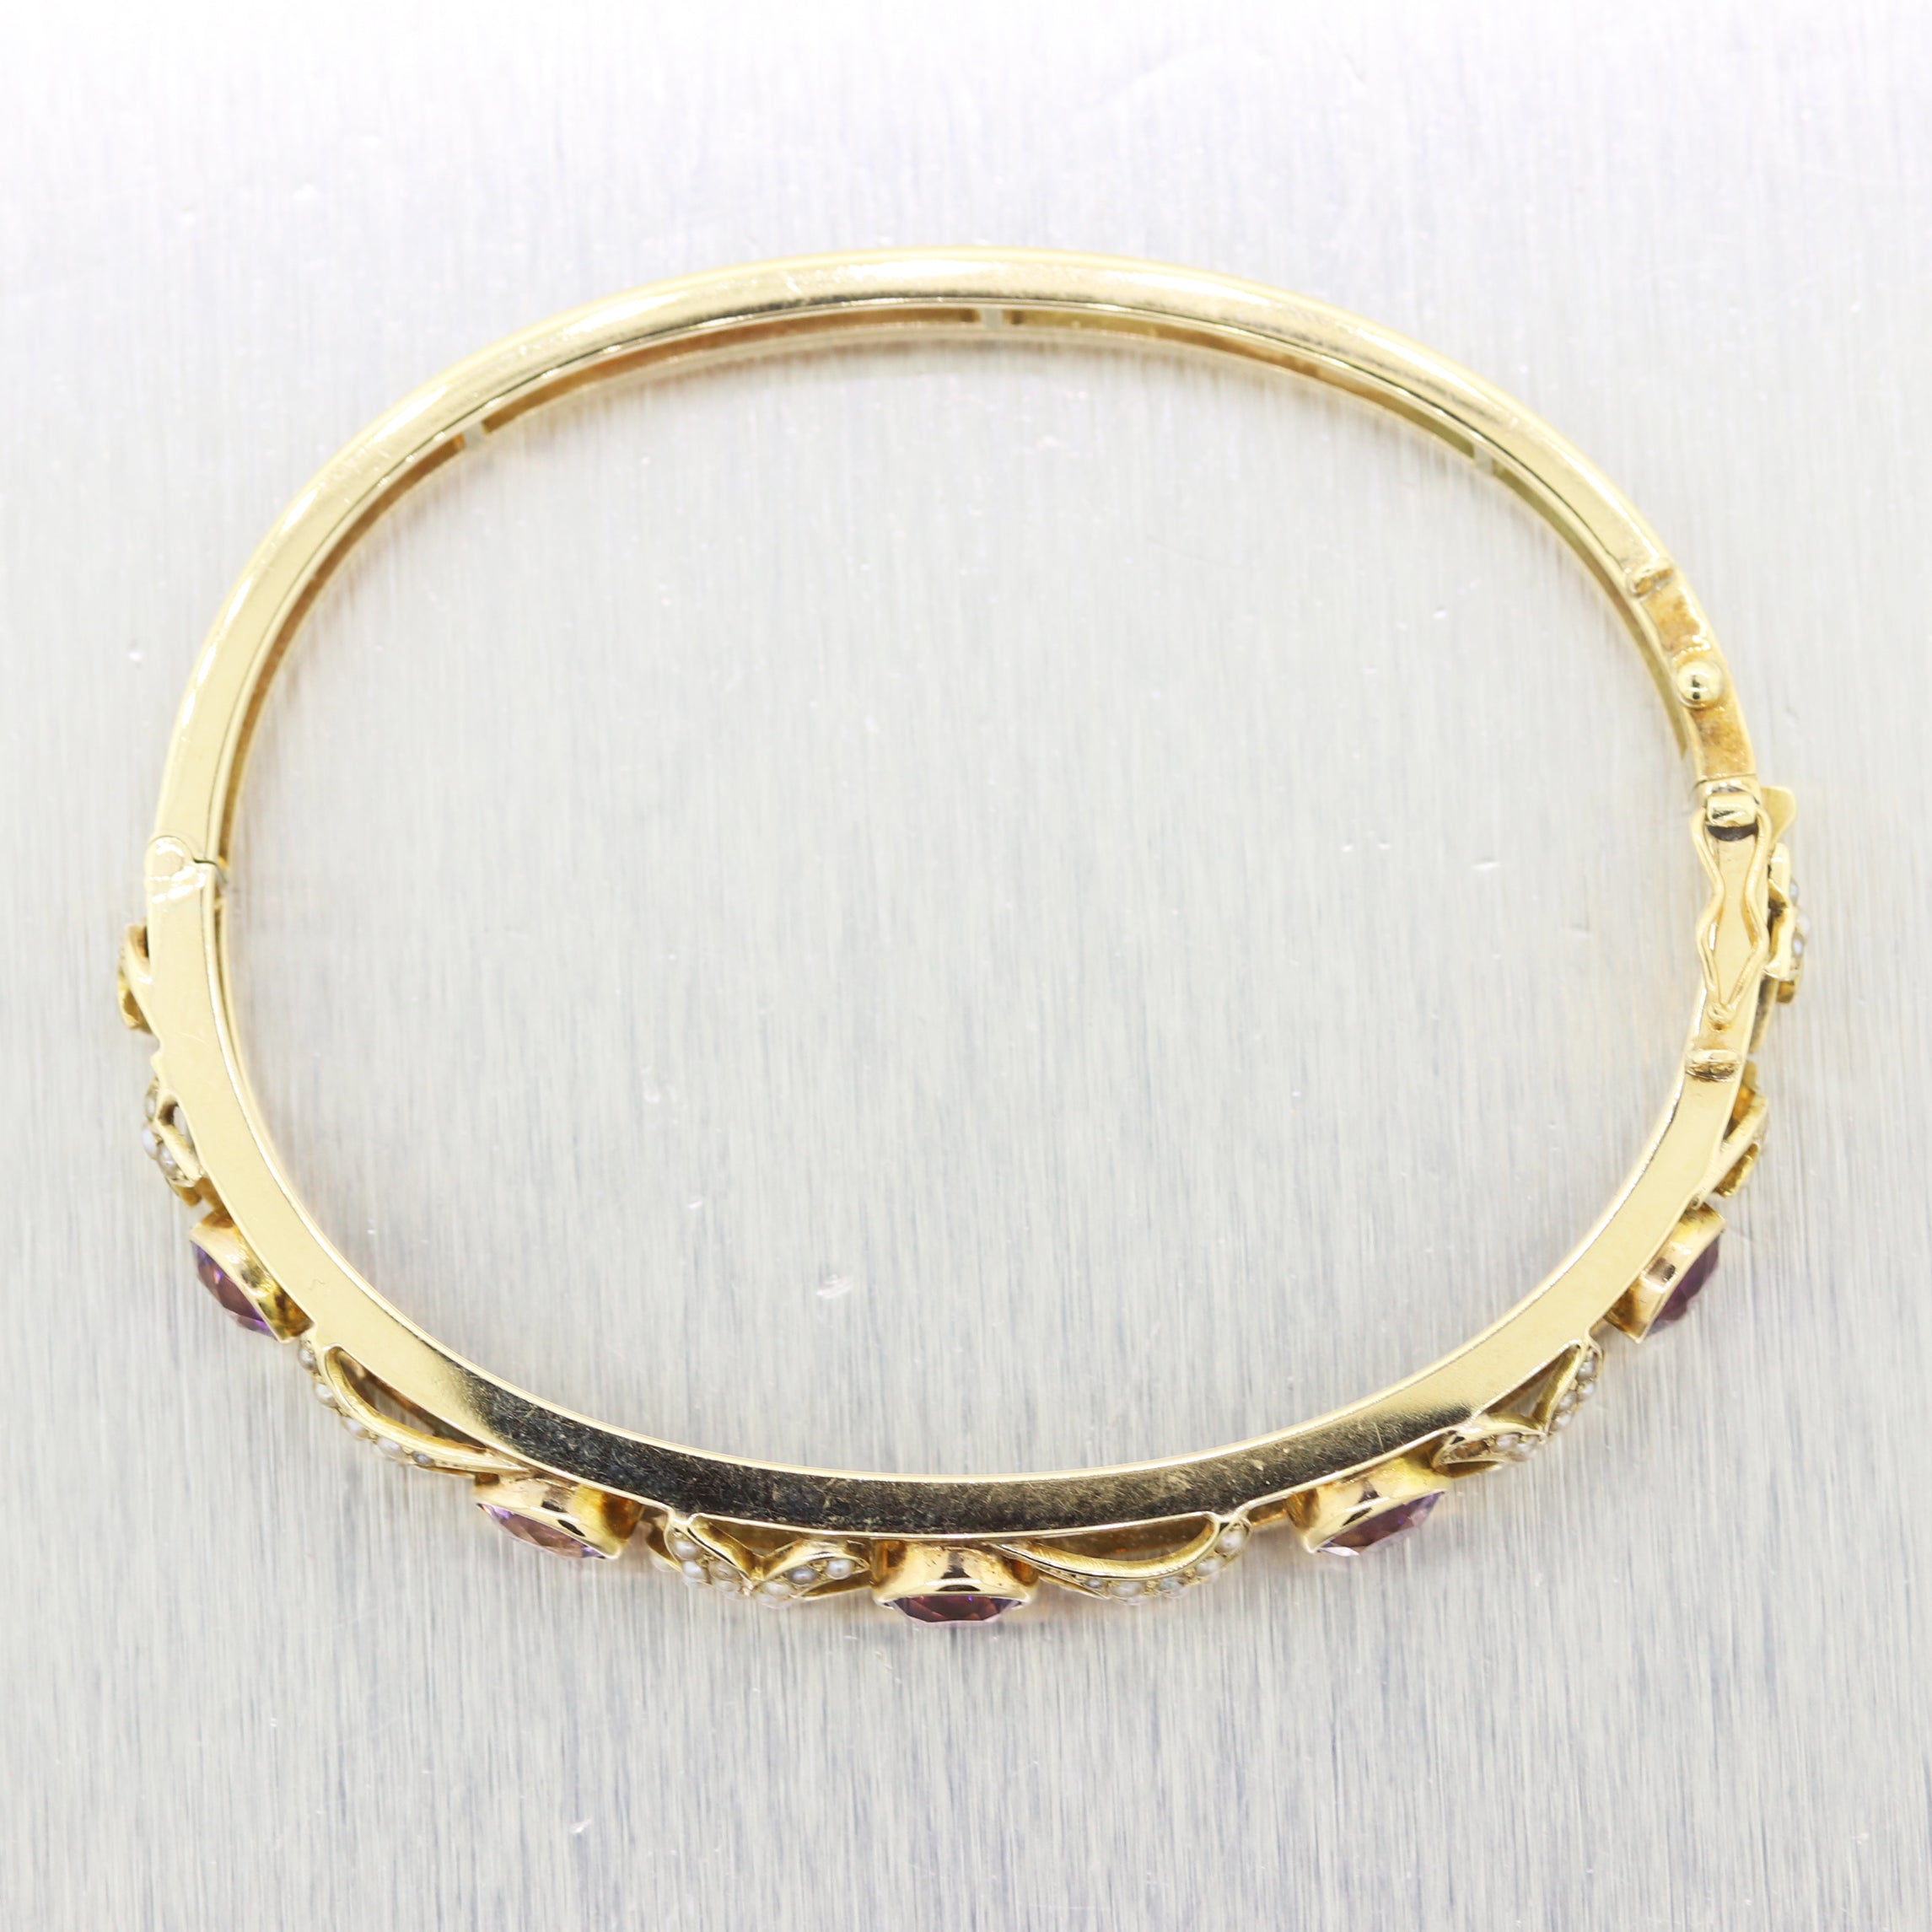 1880's Antique Victorian 14k Yellow Gold 3.75ctw Amethyst & Pearl Bangle Bracele